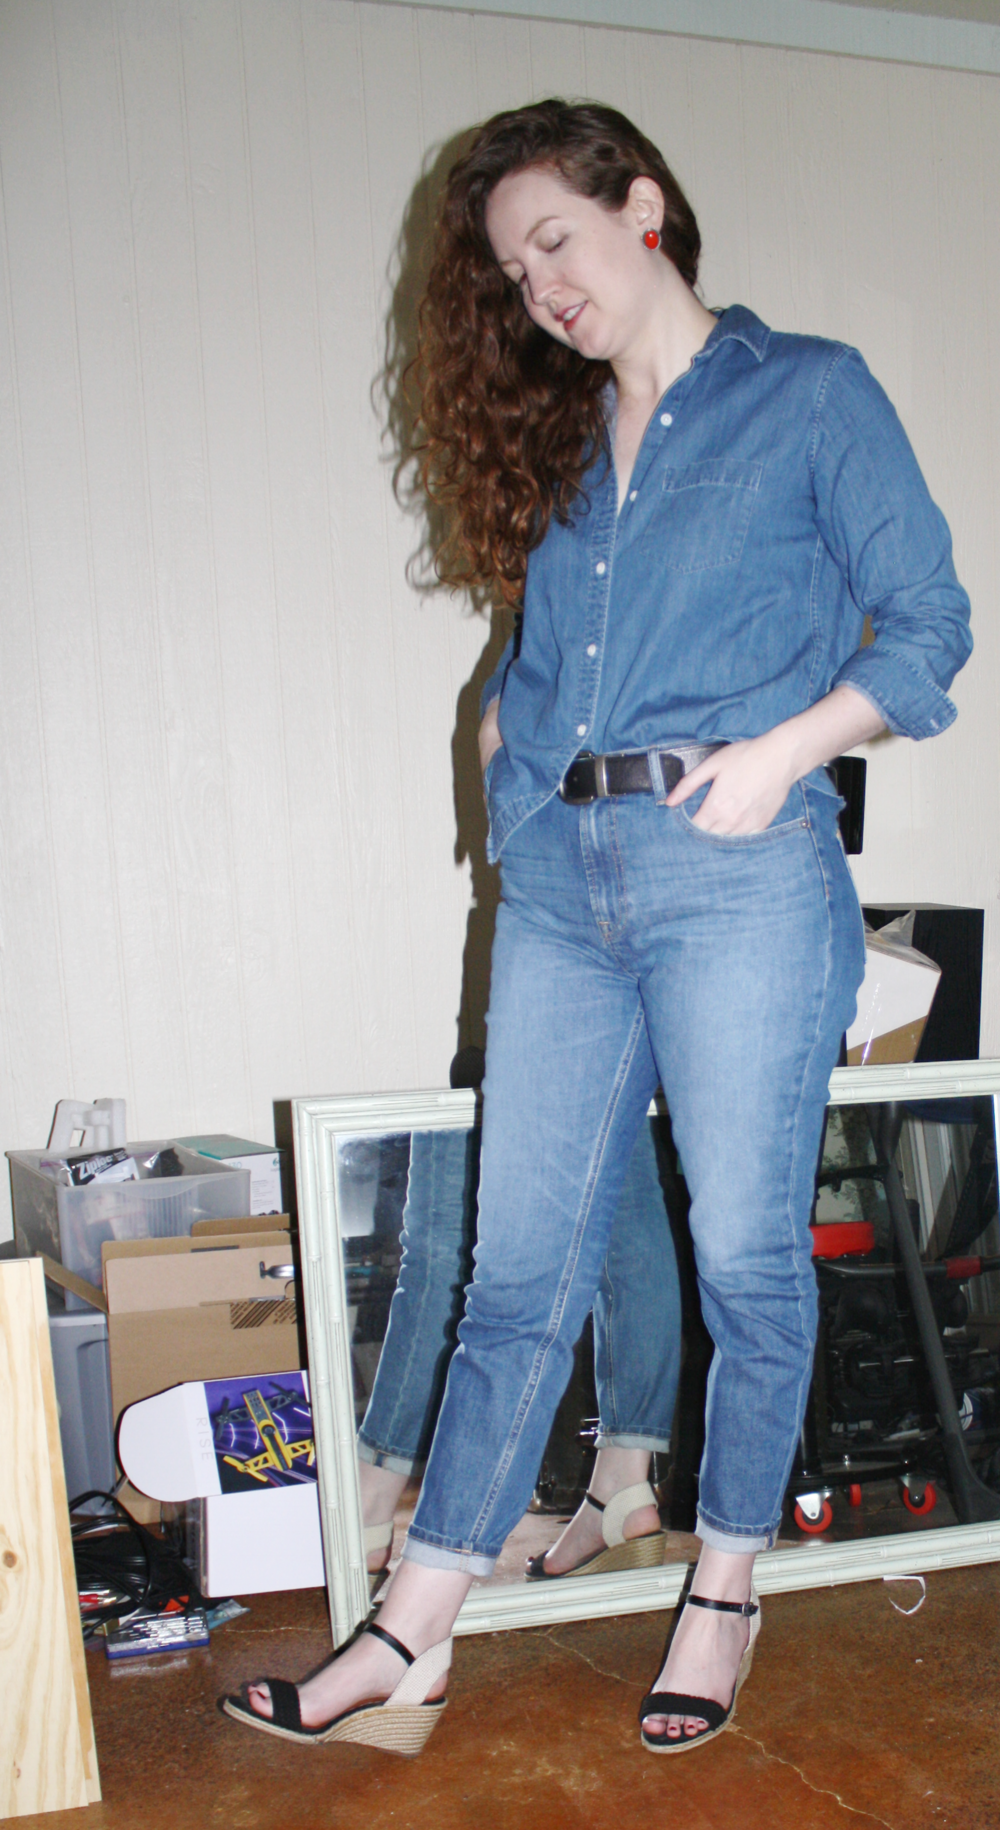 Canadian tux in the hardest denim shade to match.